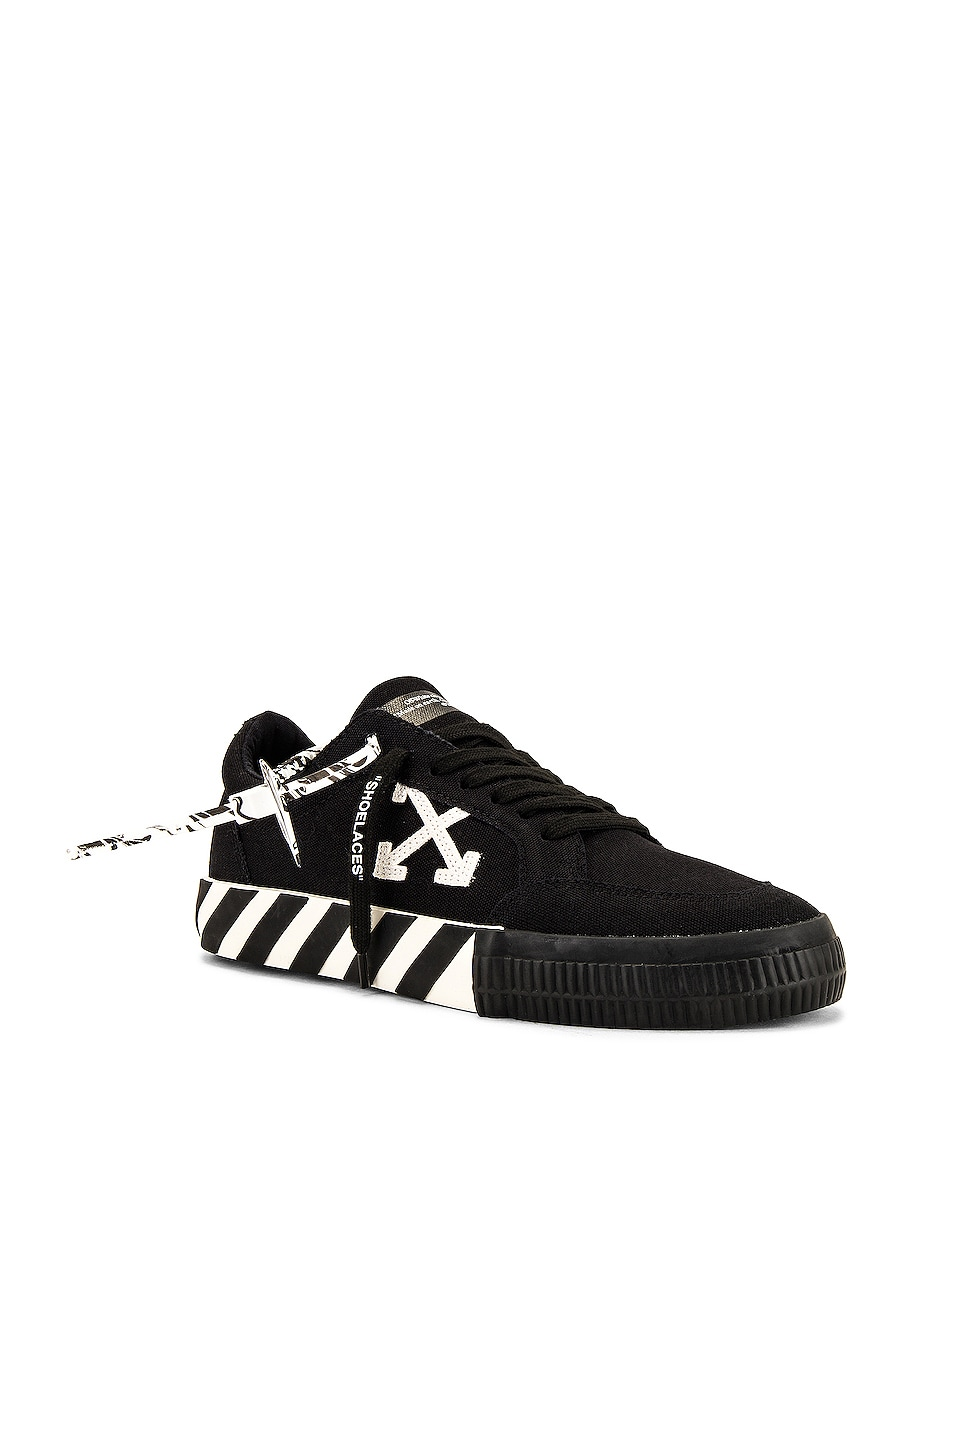 Image 1 of OFF-WHITE Low Vulcanized Canvas Sneaker in Black & White